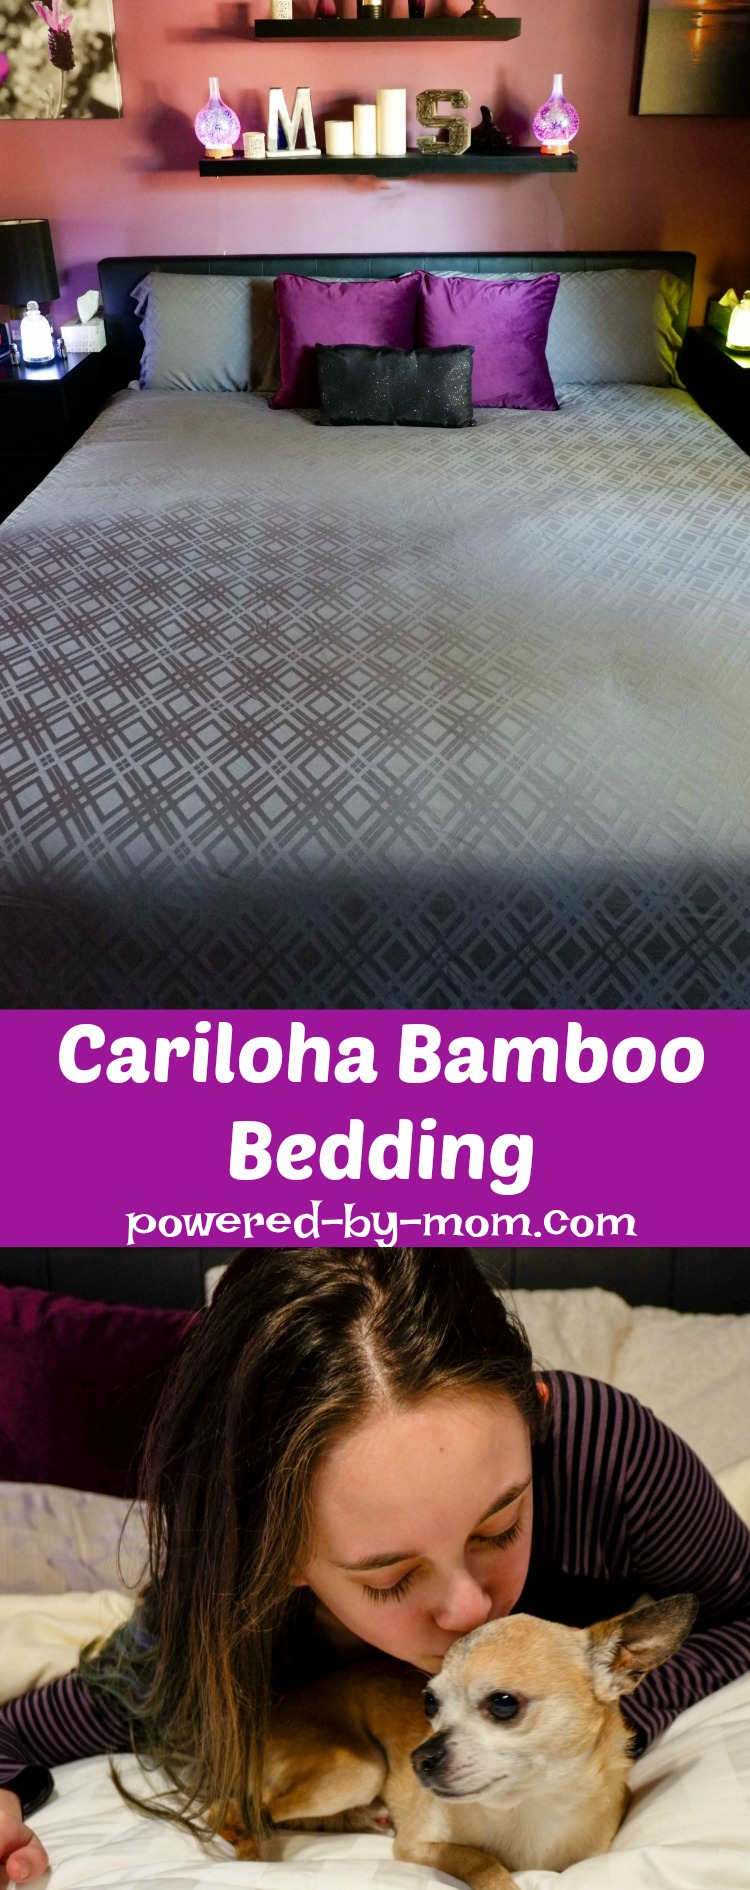 Cariloha Bamboo Bedding is pure luxury. The softest bedding on the planet.